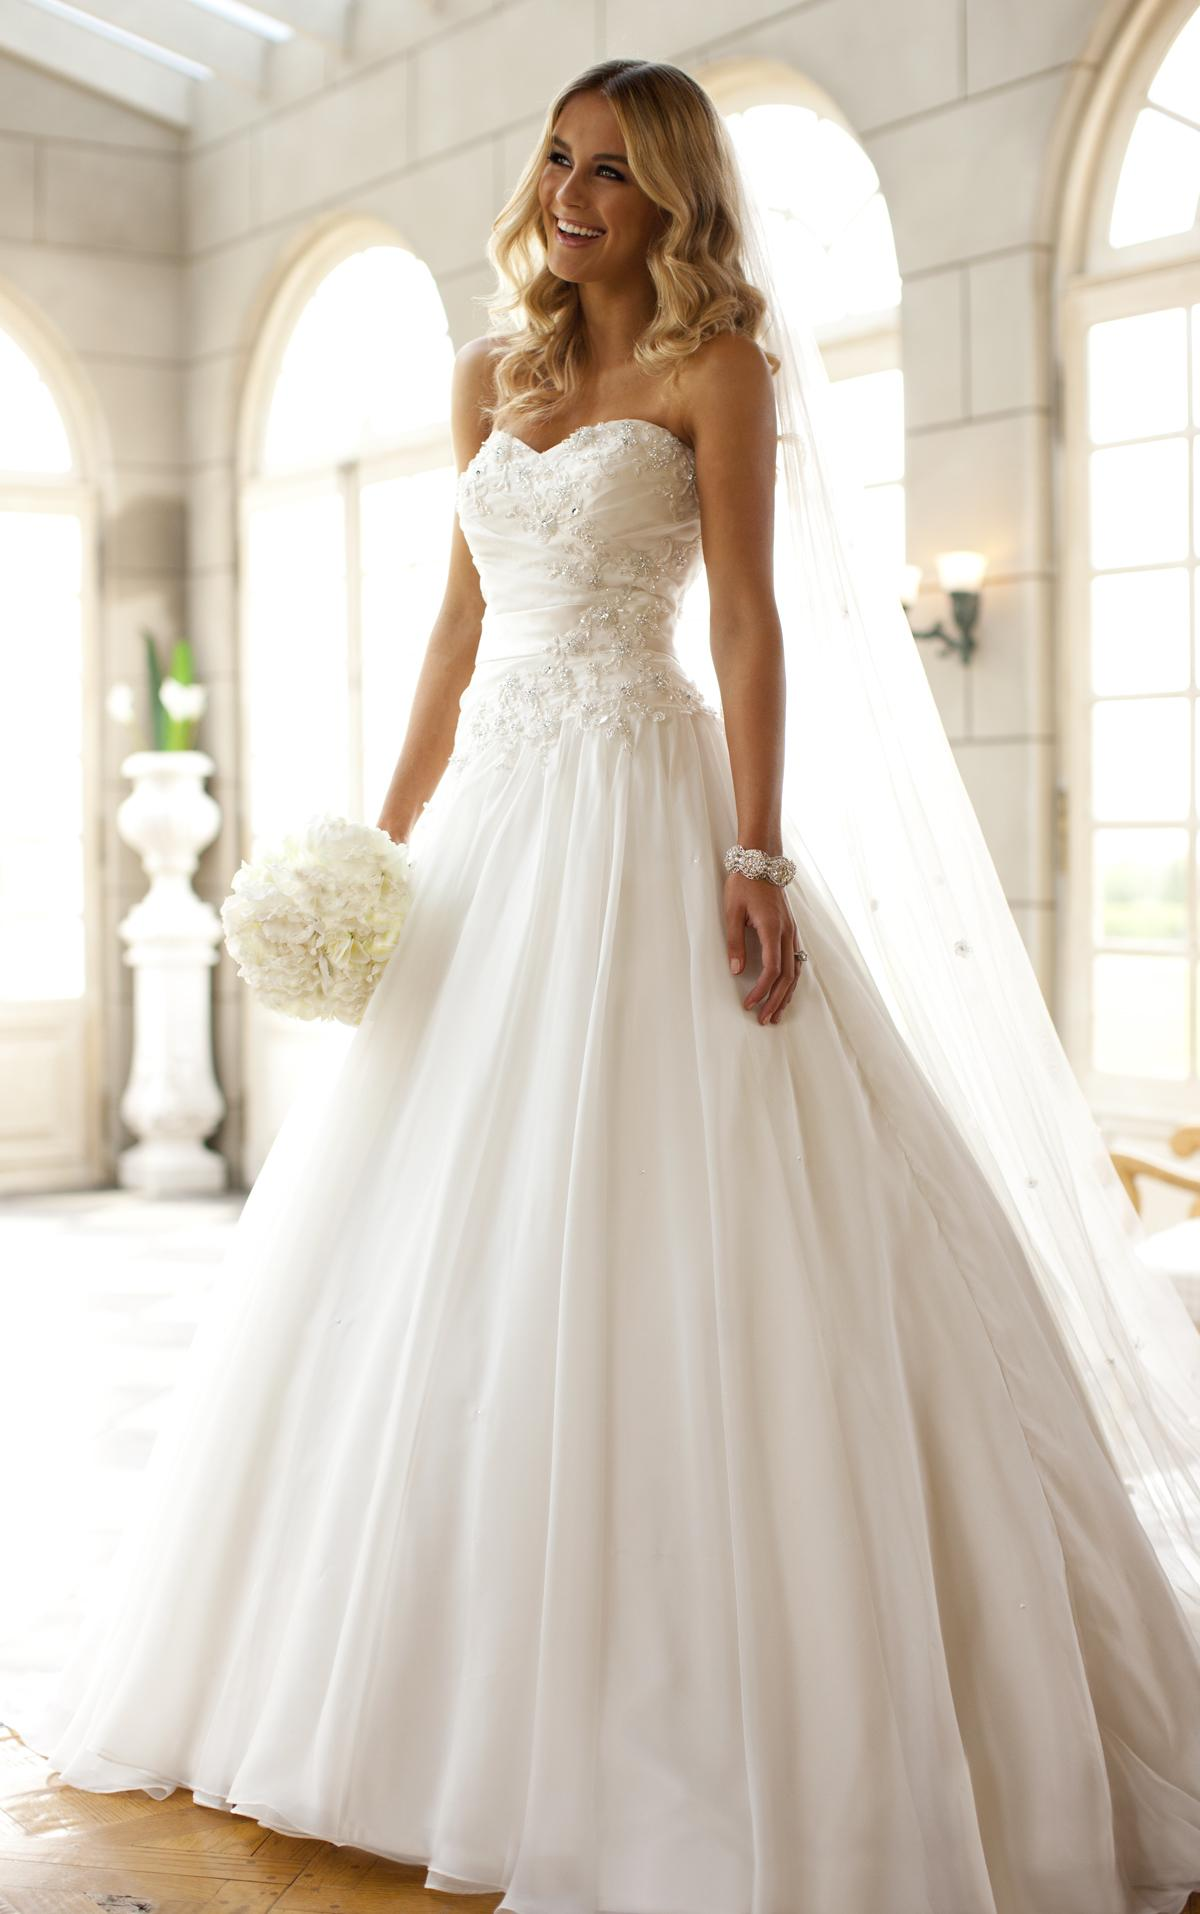 official photos 66c8c c82ce Equitalia: abiti da sposa all'asta